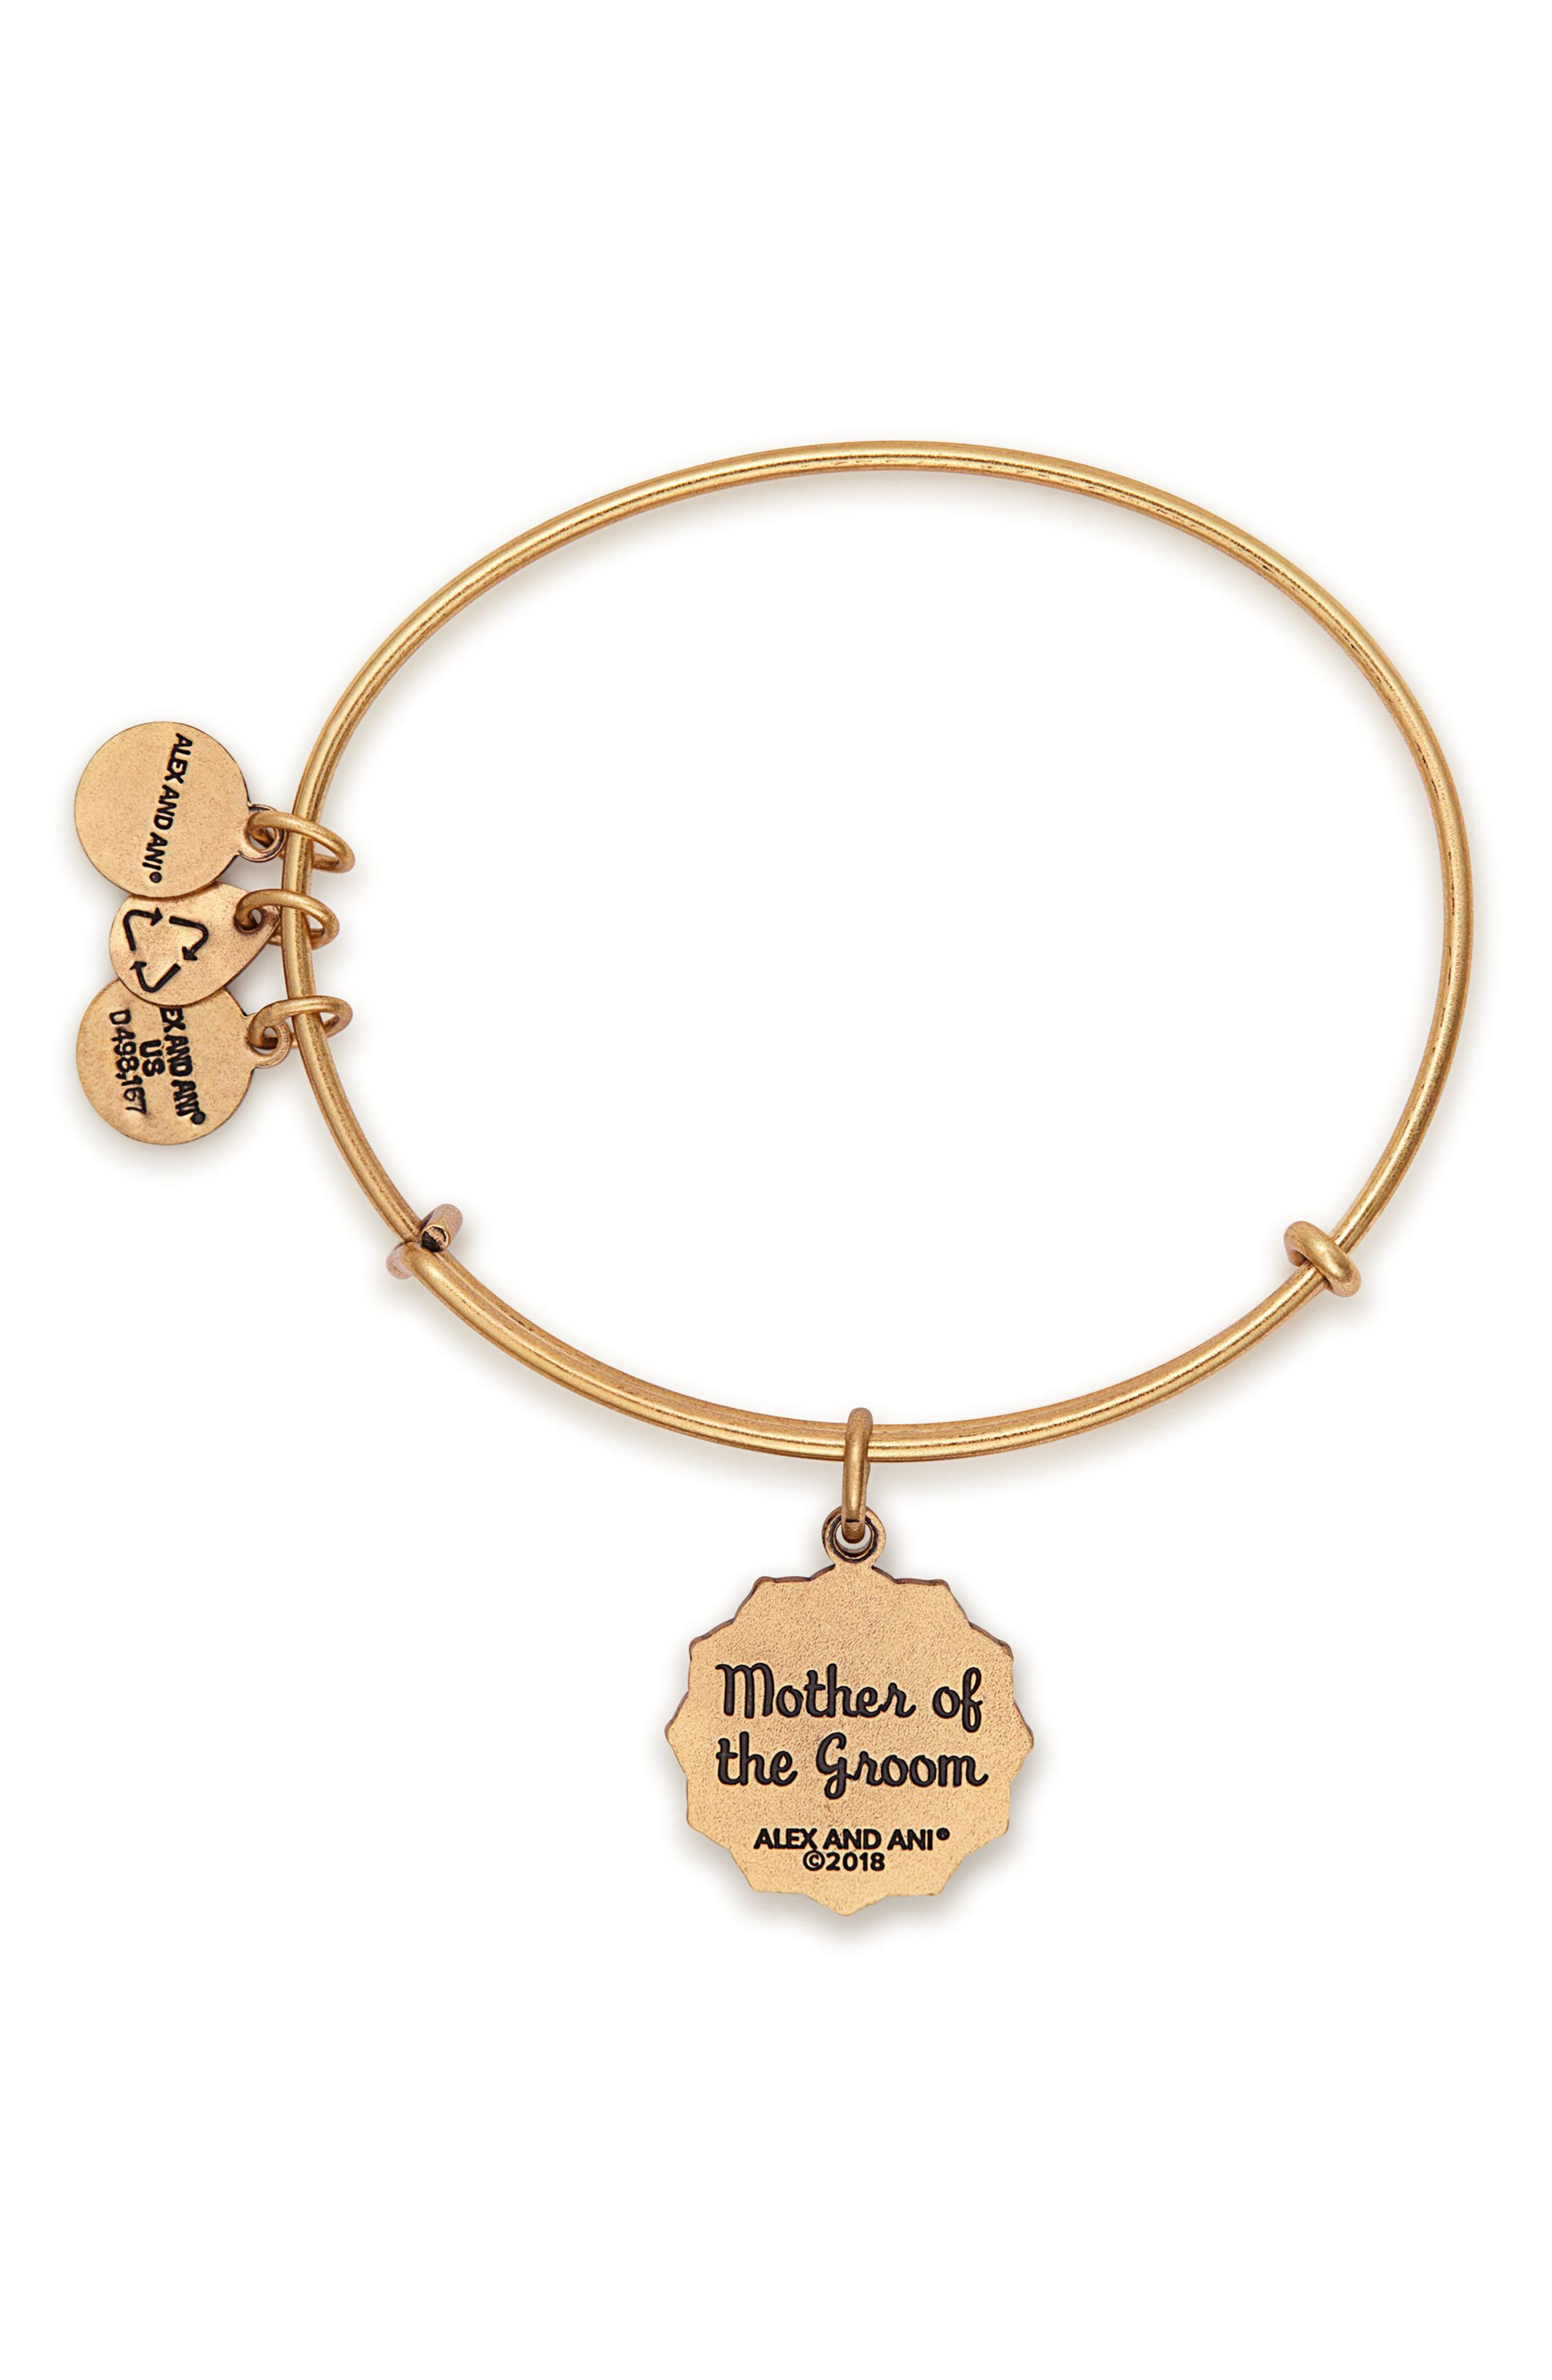 Mother of the Groom Charm Bangle,                             Alternate thumbnail 2, color,                             Gold